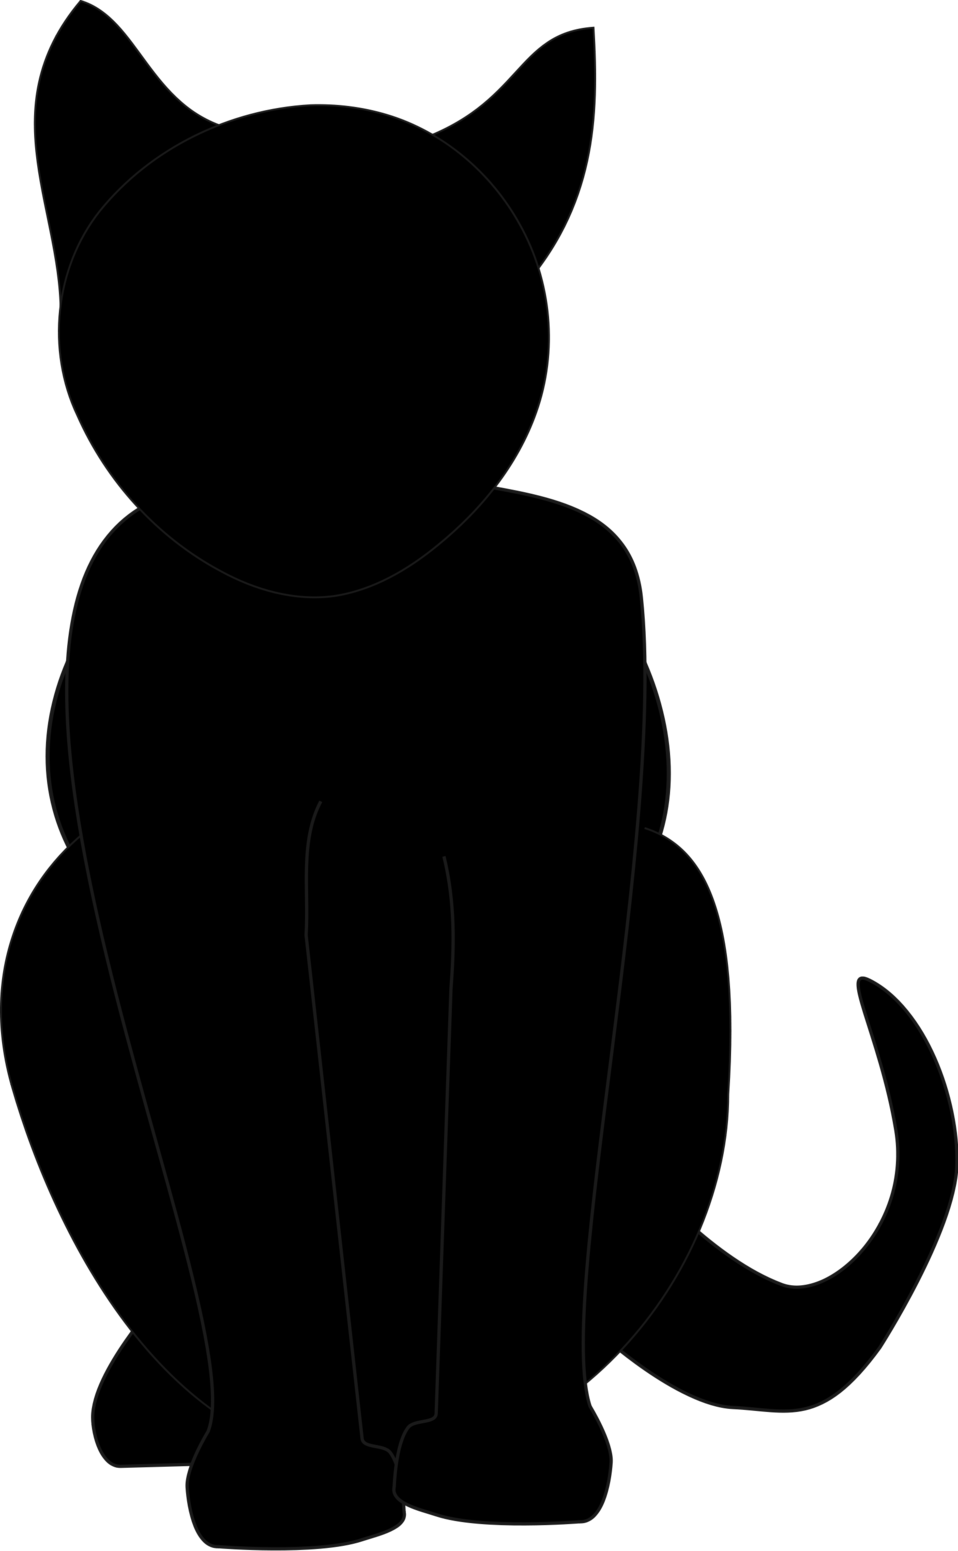 Illustrated silhouette of a black cat with a transparent background.